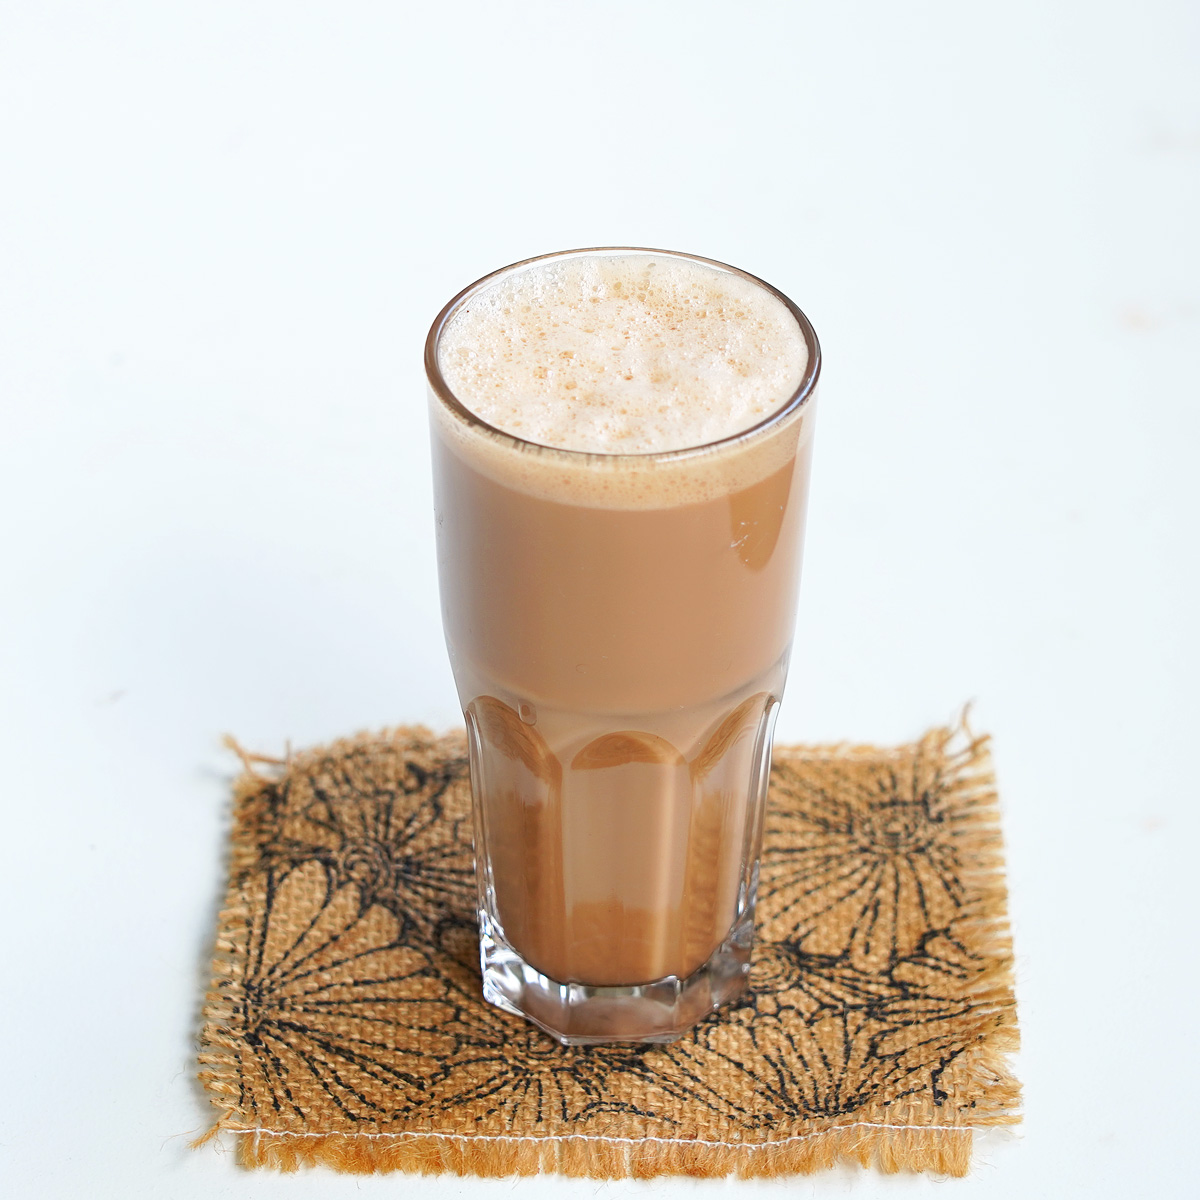 Teh Tarik, Condensed milk pulled tea recipe